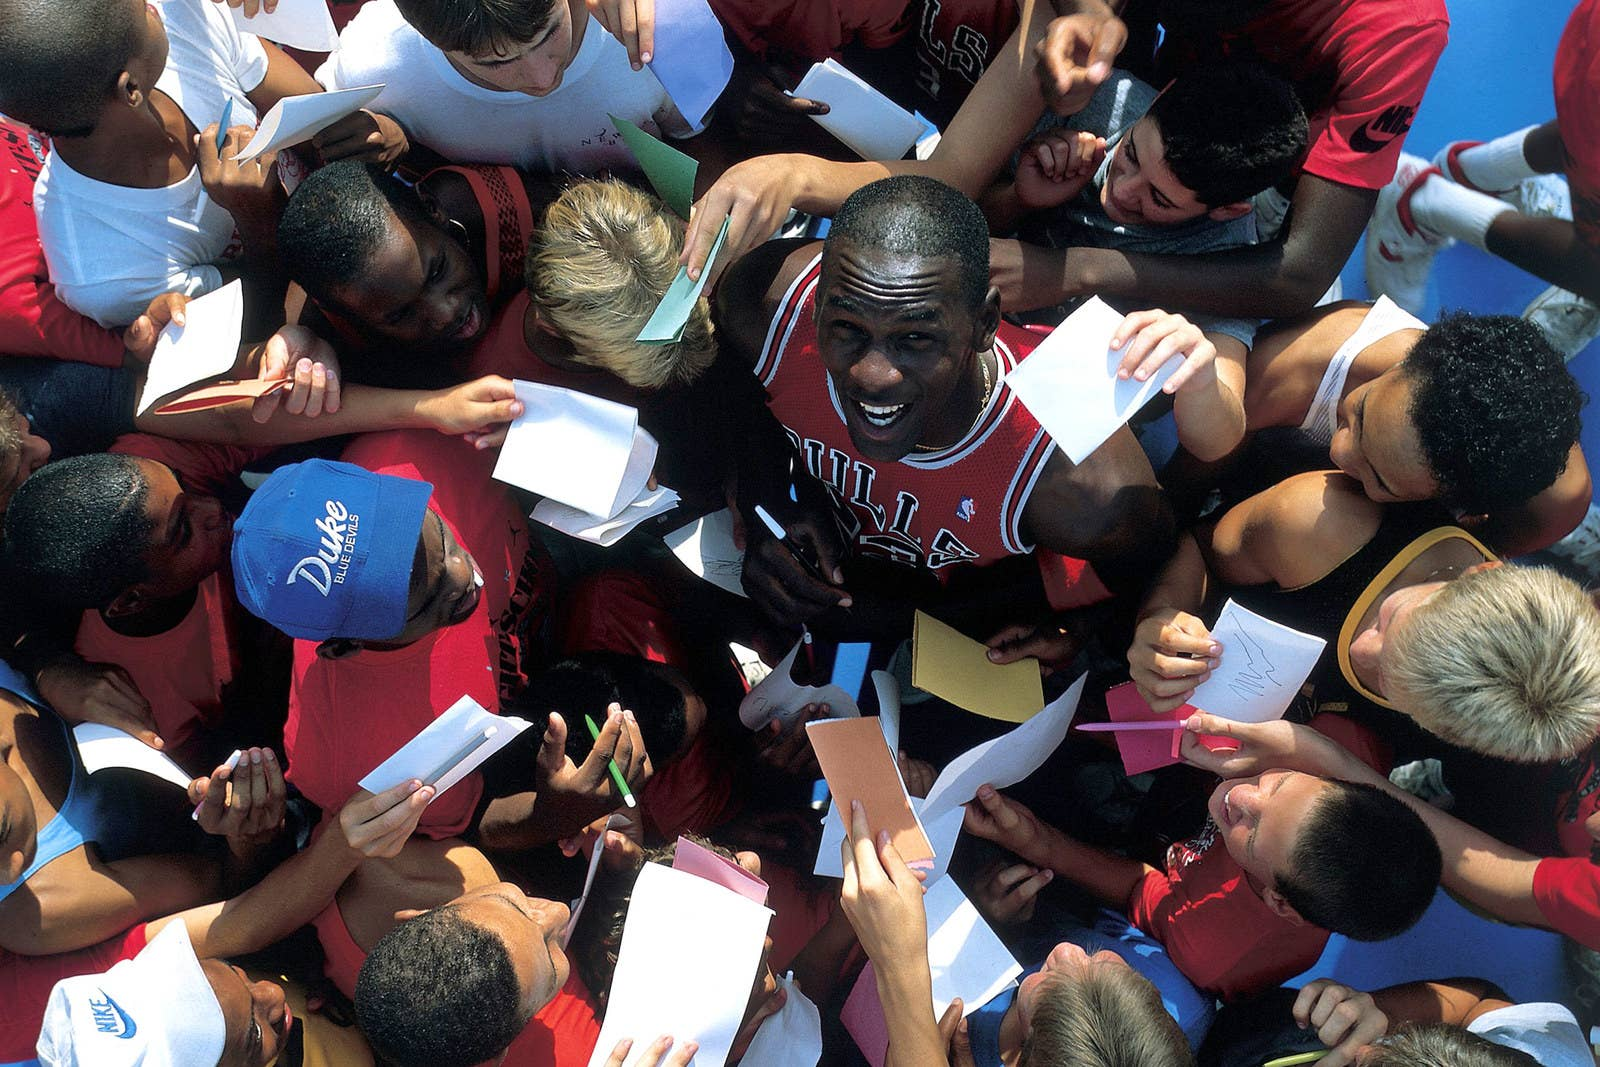 Michael Jordan signing fan cards and notes